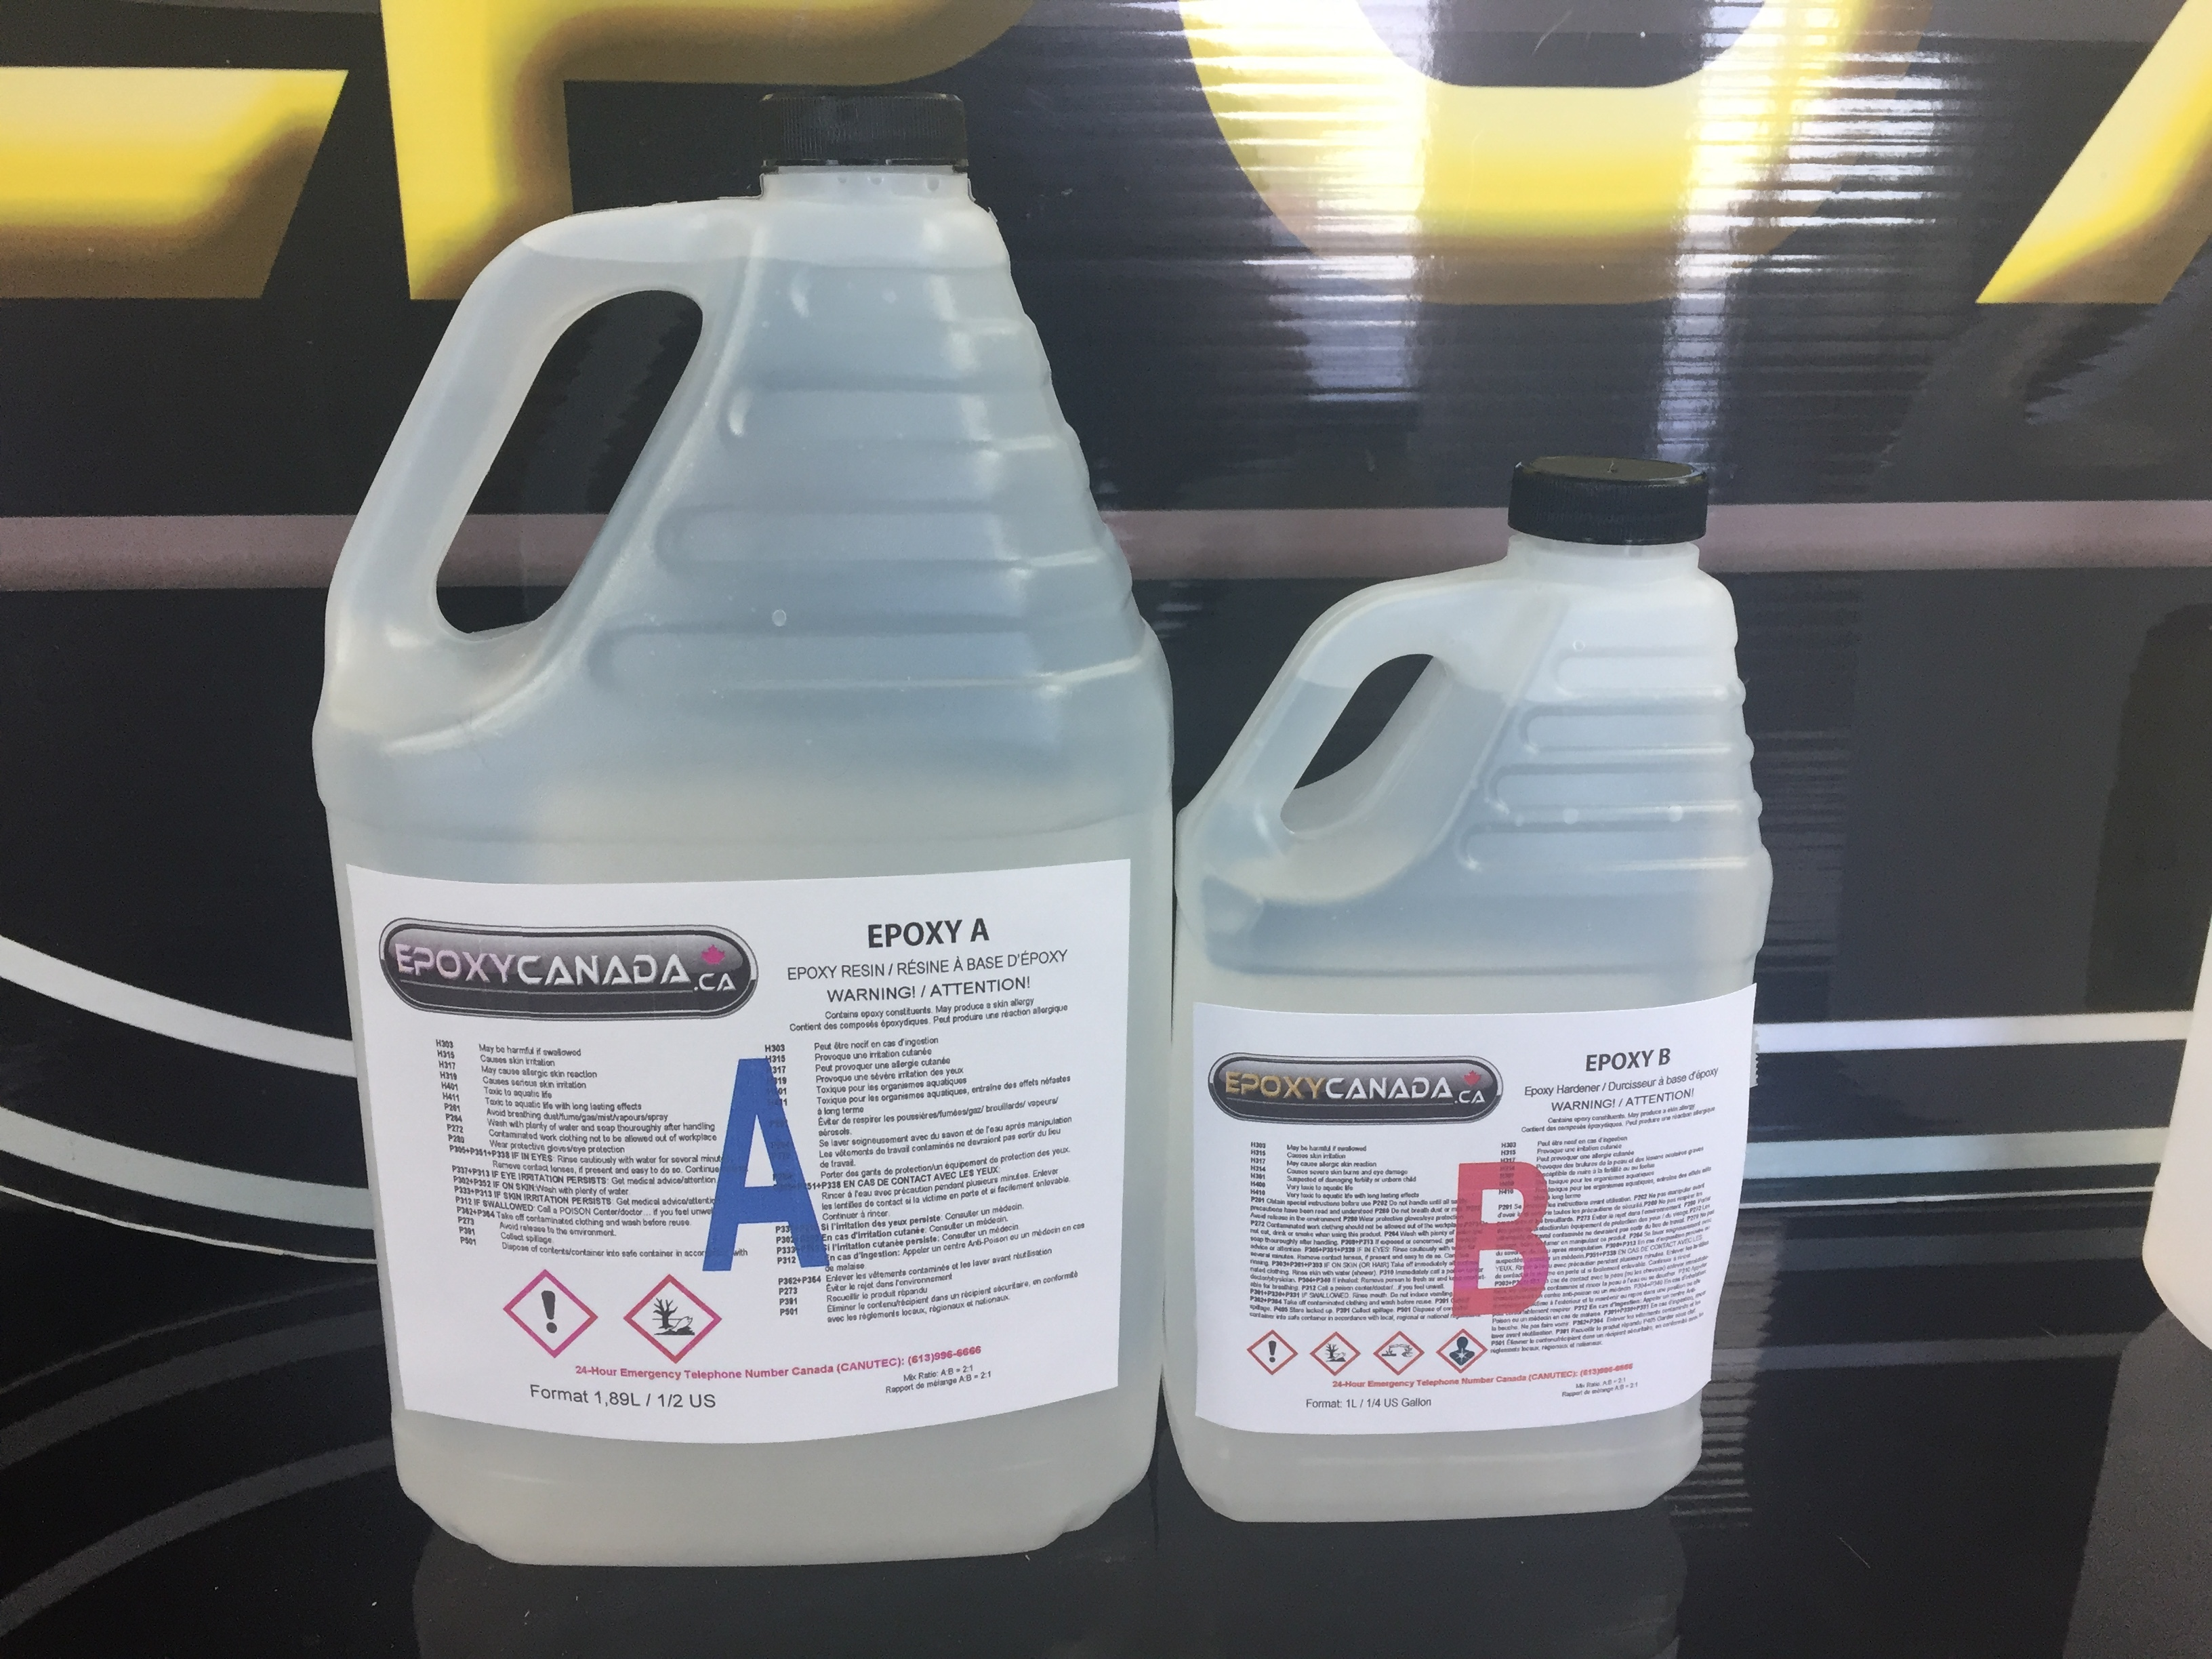 epoxy resin/résine époxydique 3/4 US gallon(2,85L) 00010